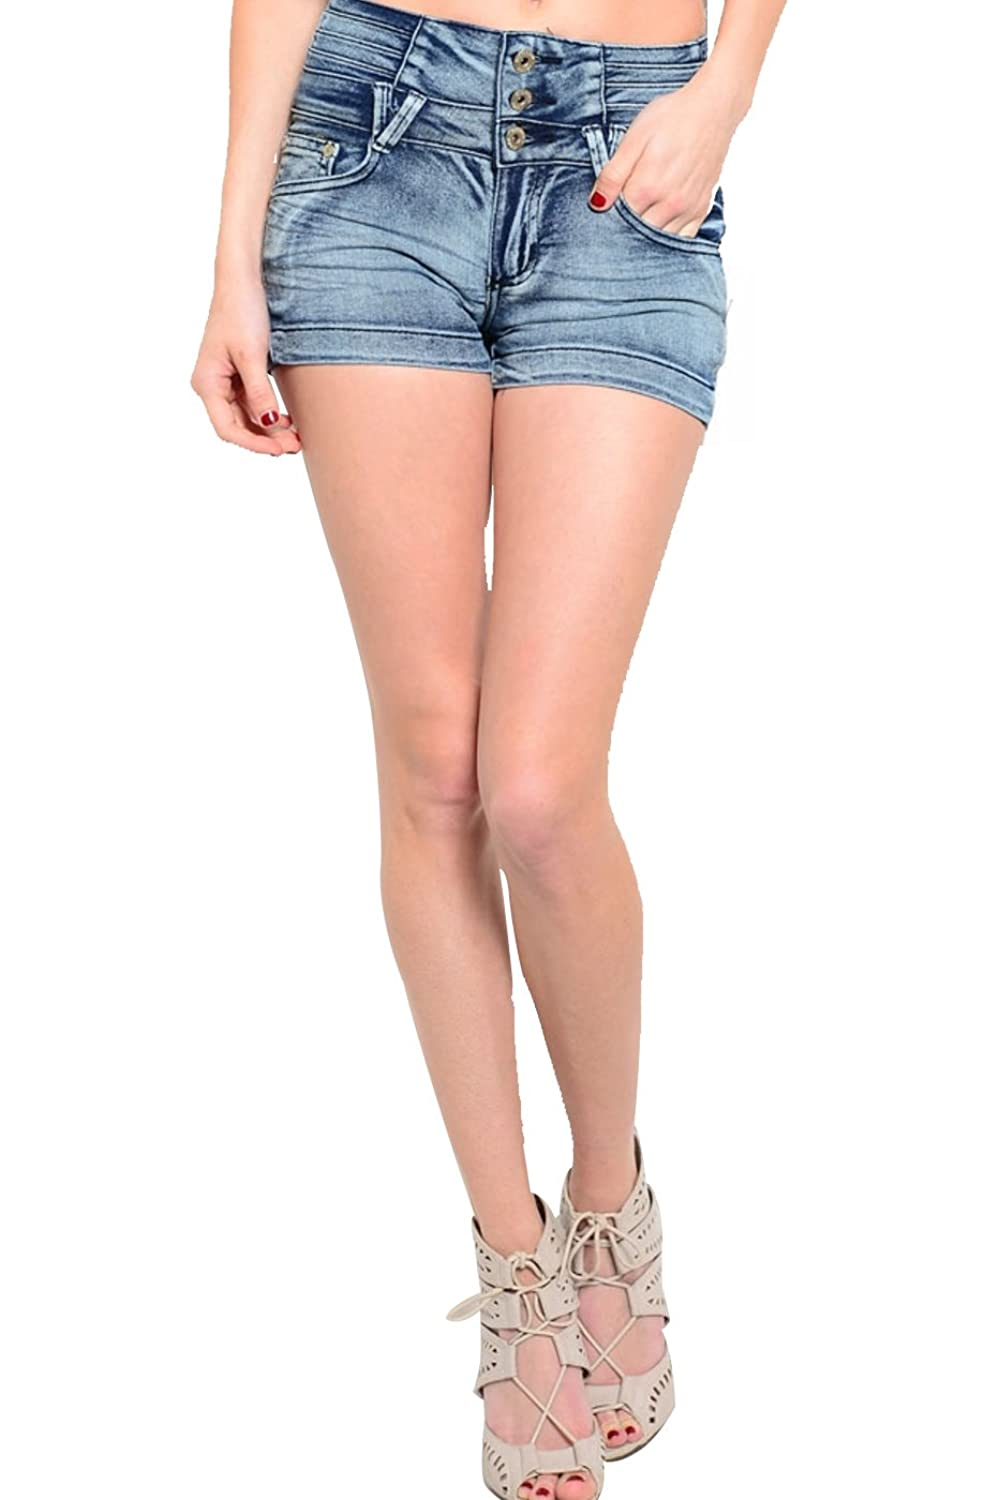 2LUV Women's Embroidered Mid-Rise Denim Shorts